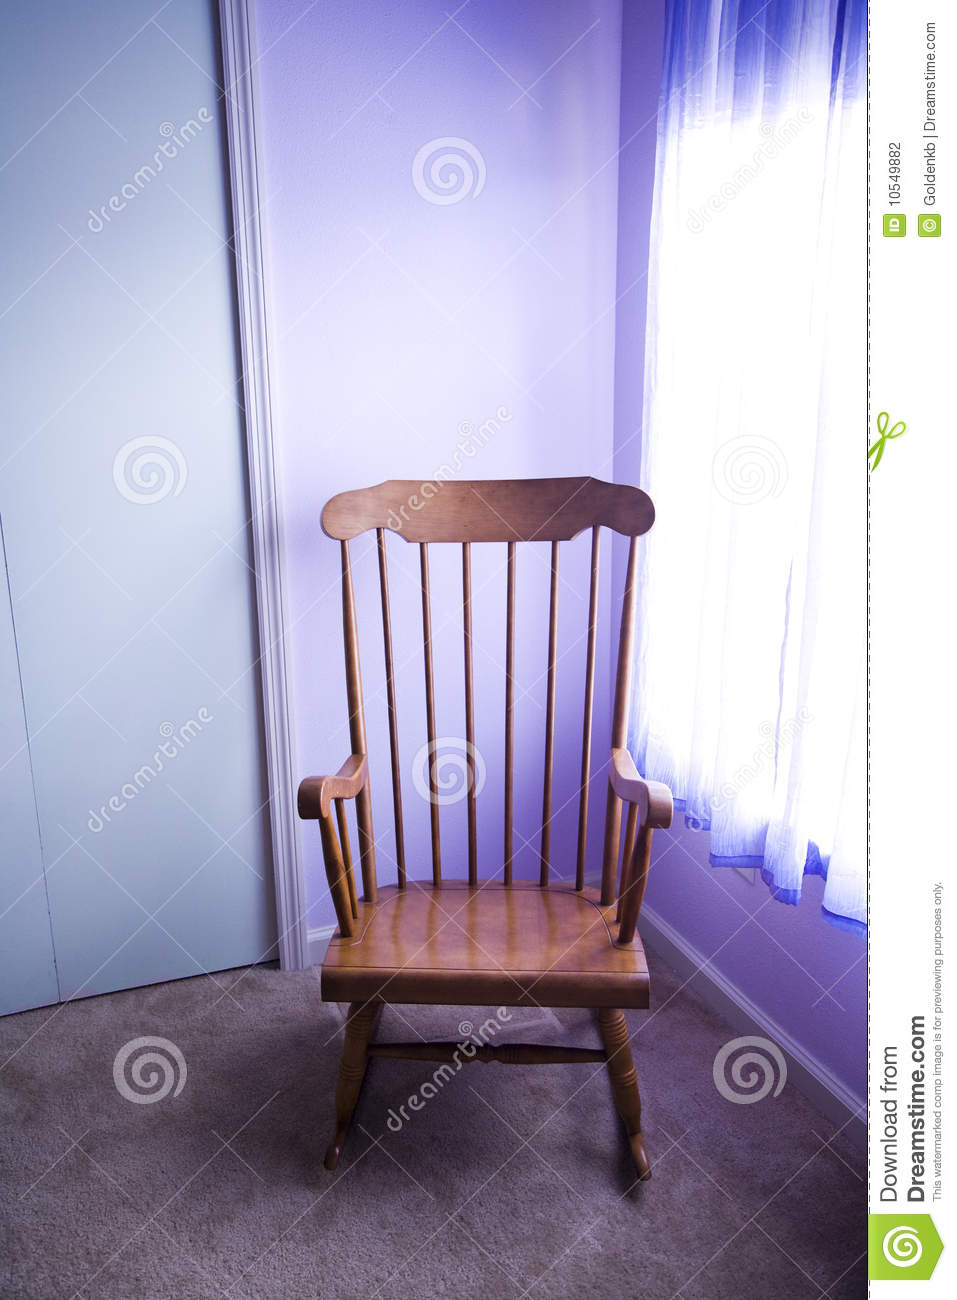 Rocking chair stock photography image 10549882 for Chair next to window